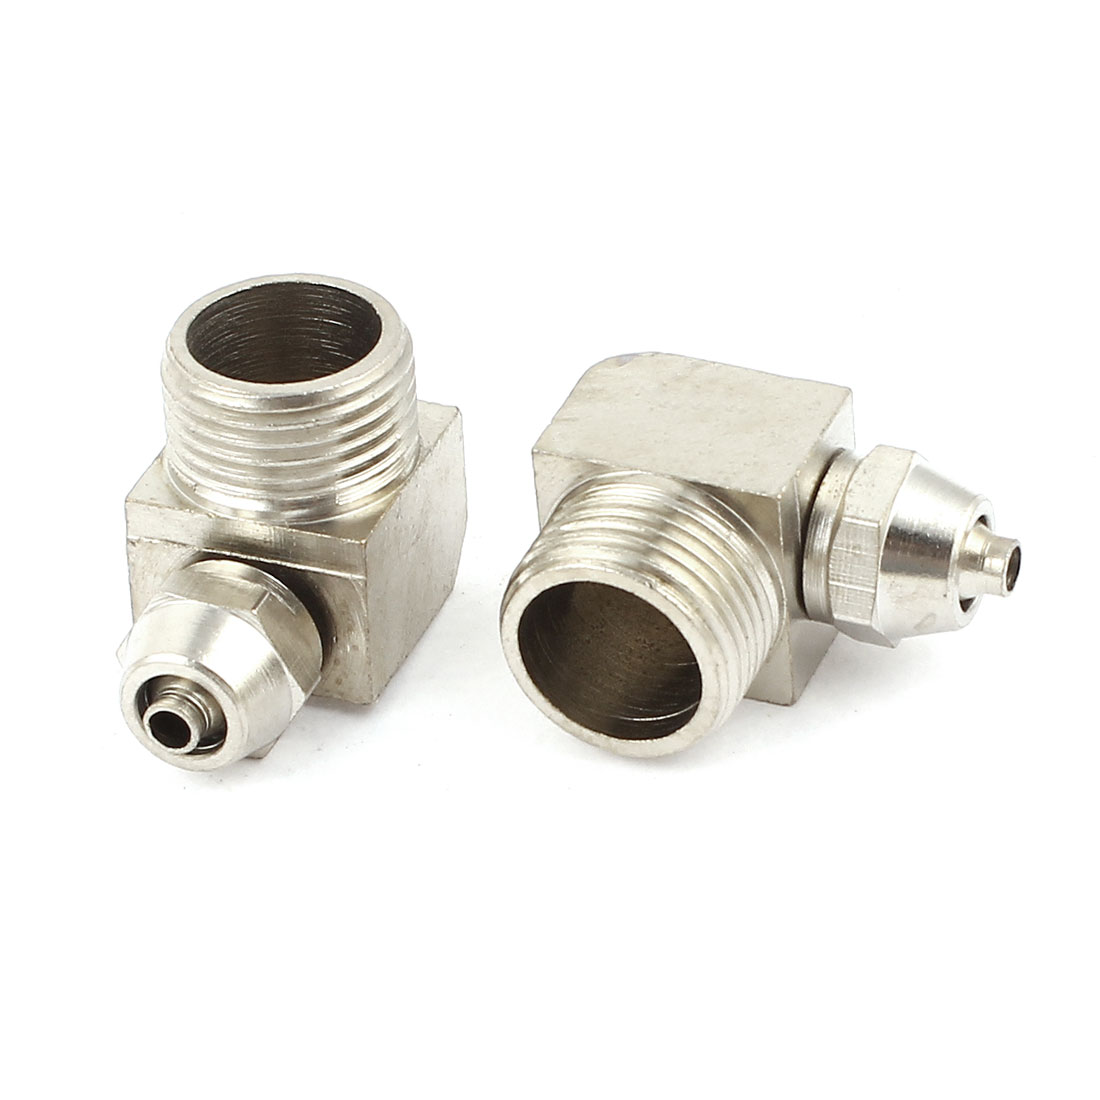 2pcs 9mm Tube 3/8PT Thread L Shaped Elbow Quick Coupler Fittings